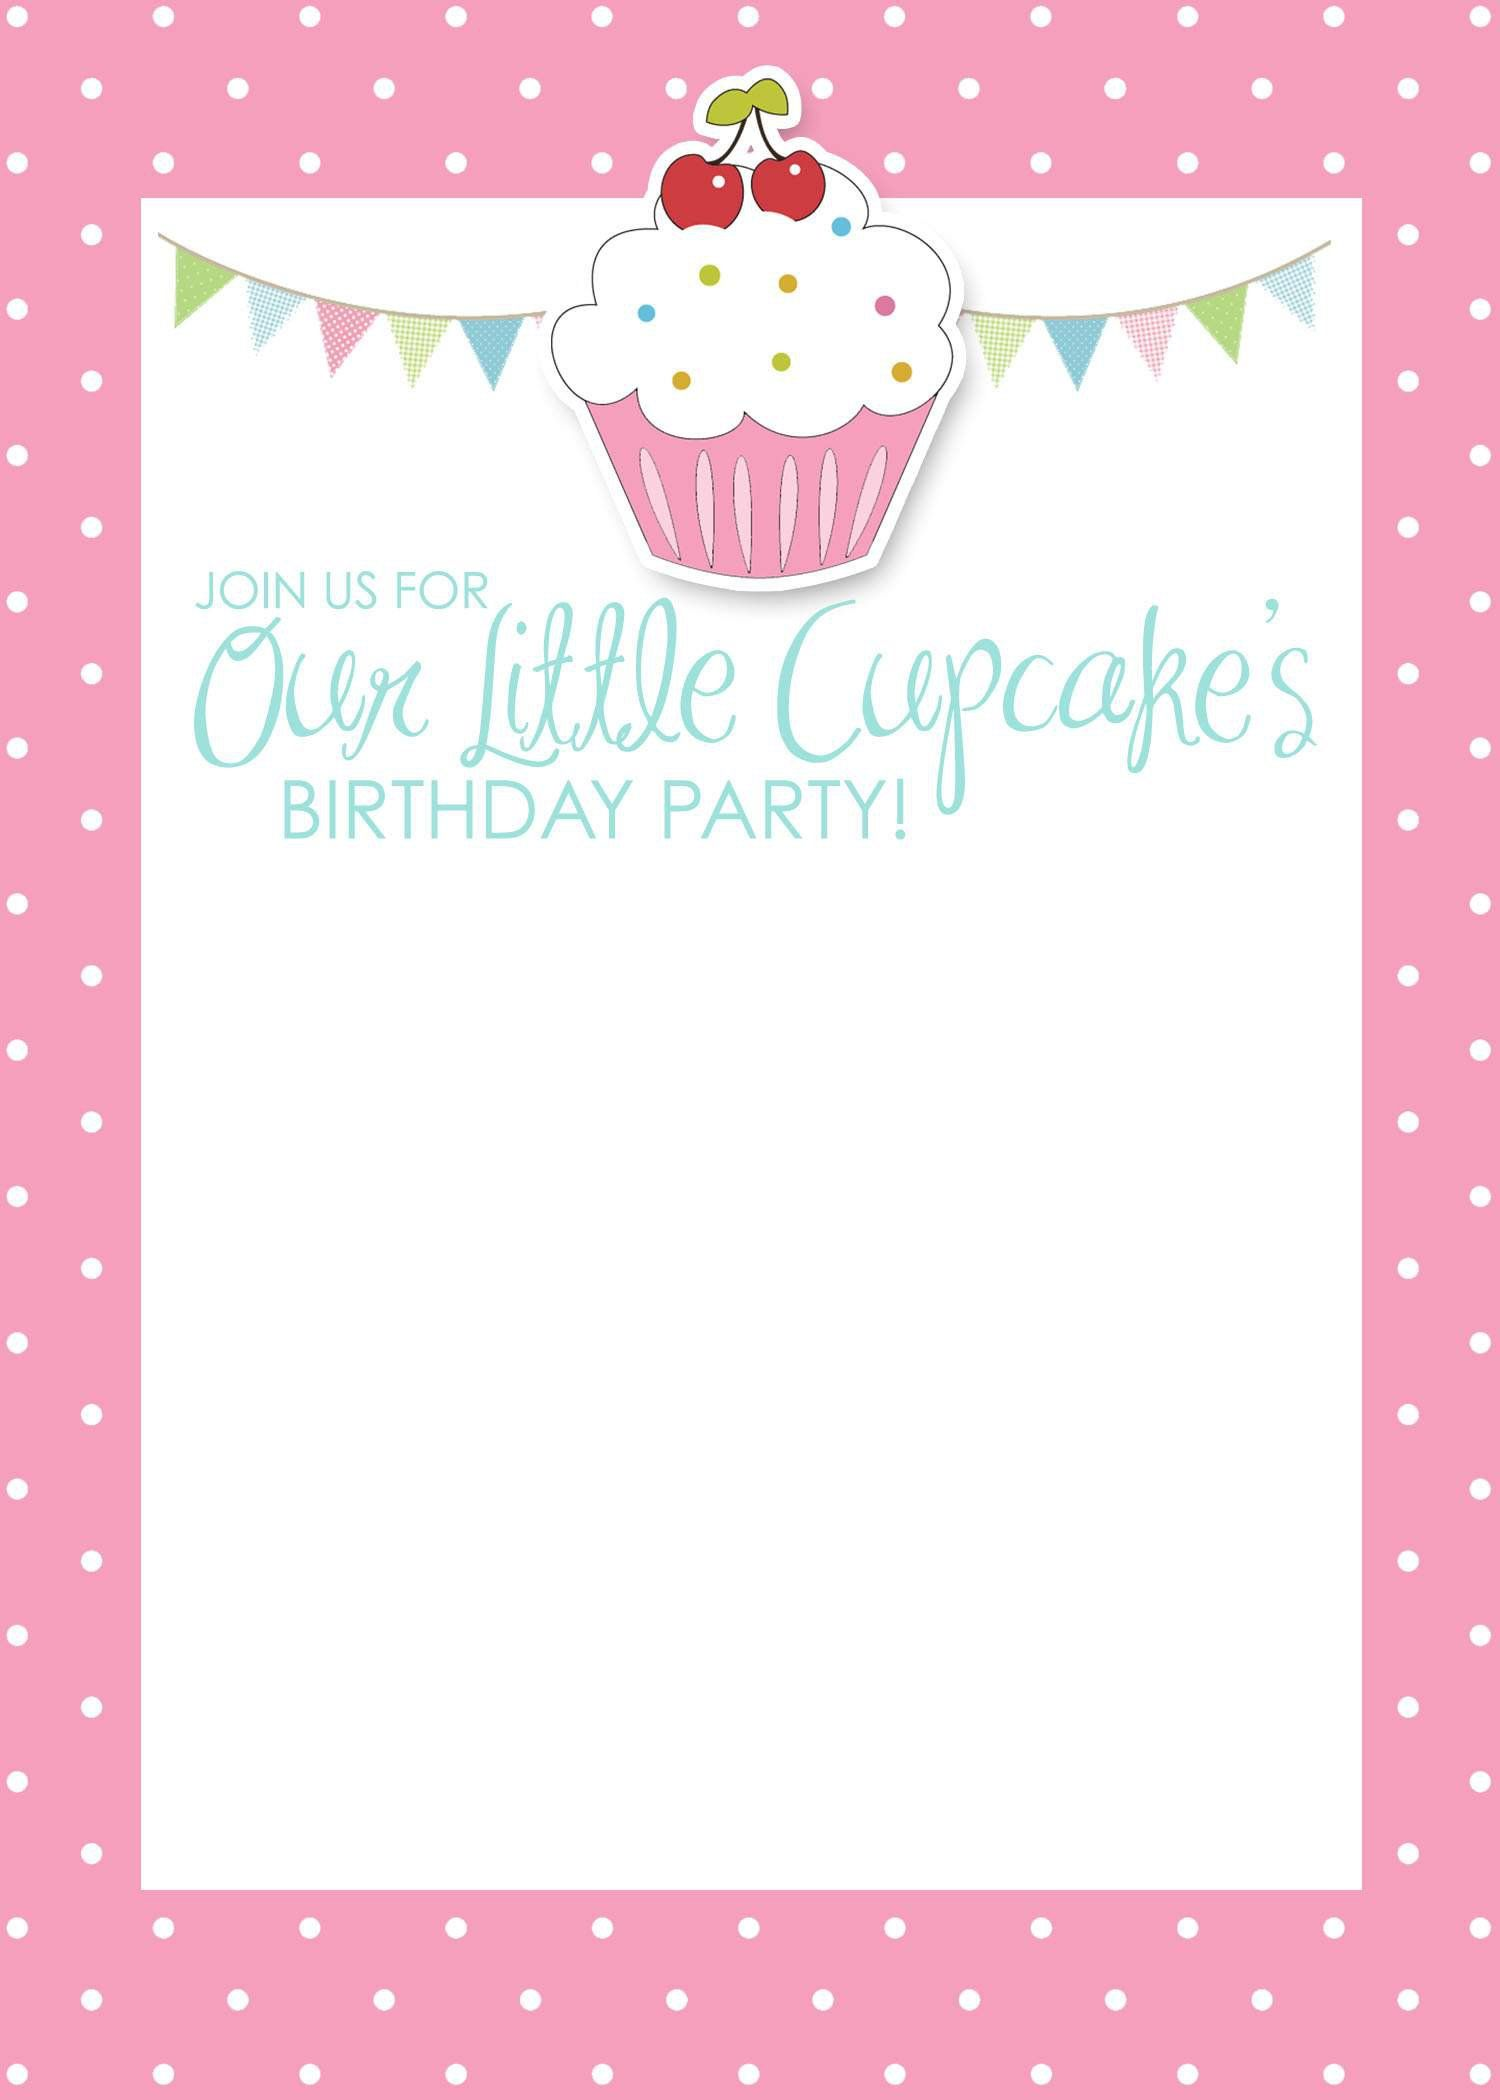 Birthday invitation card template free birthday invitations birthday invitation card template free stopboris